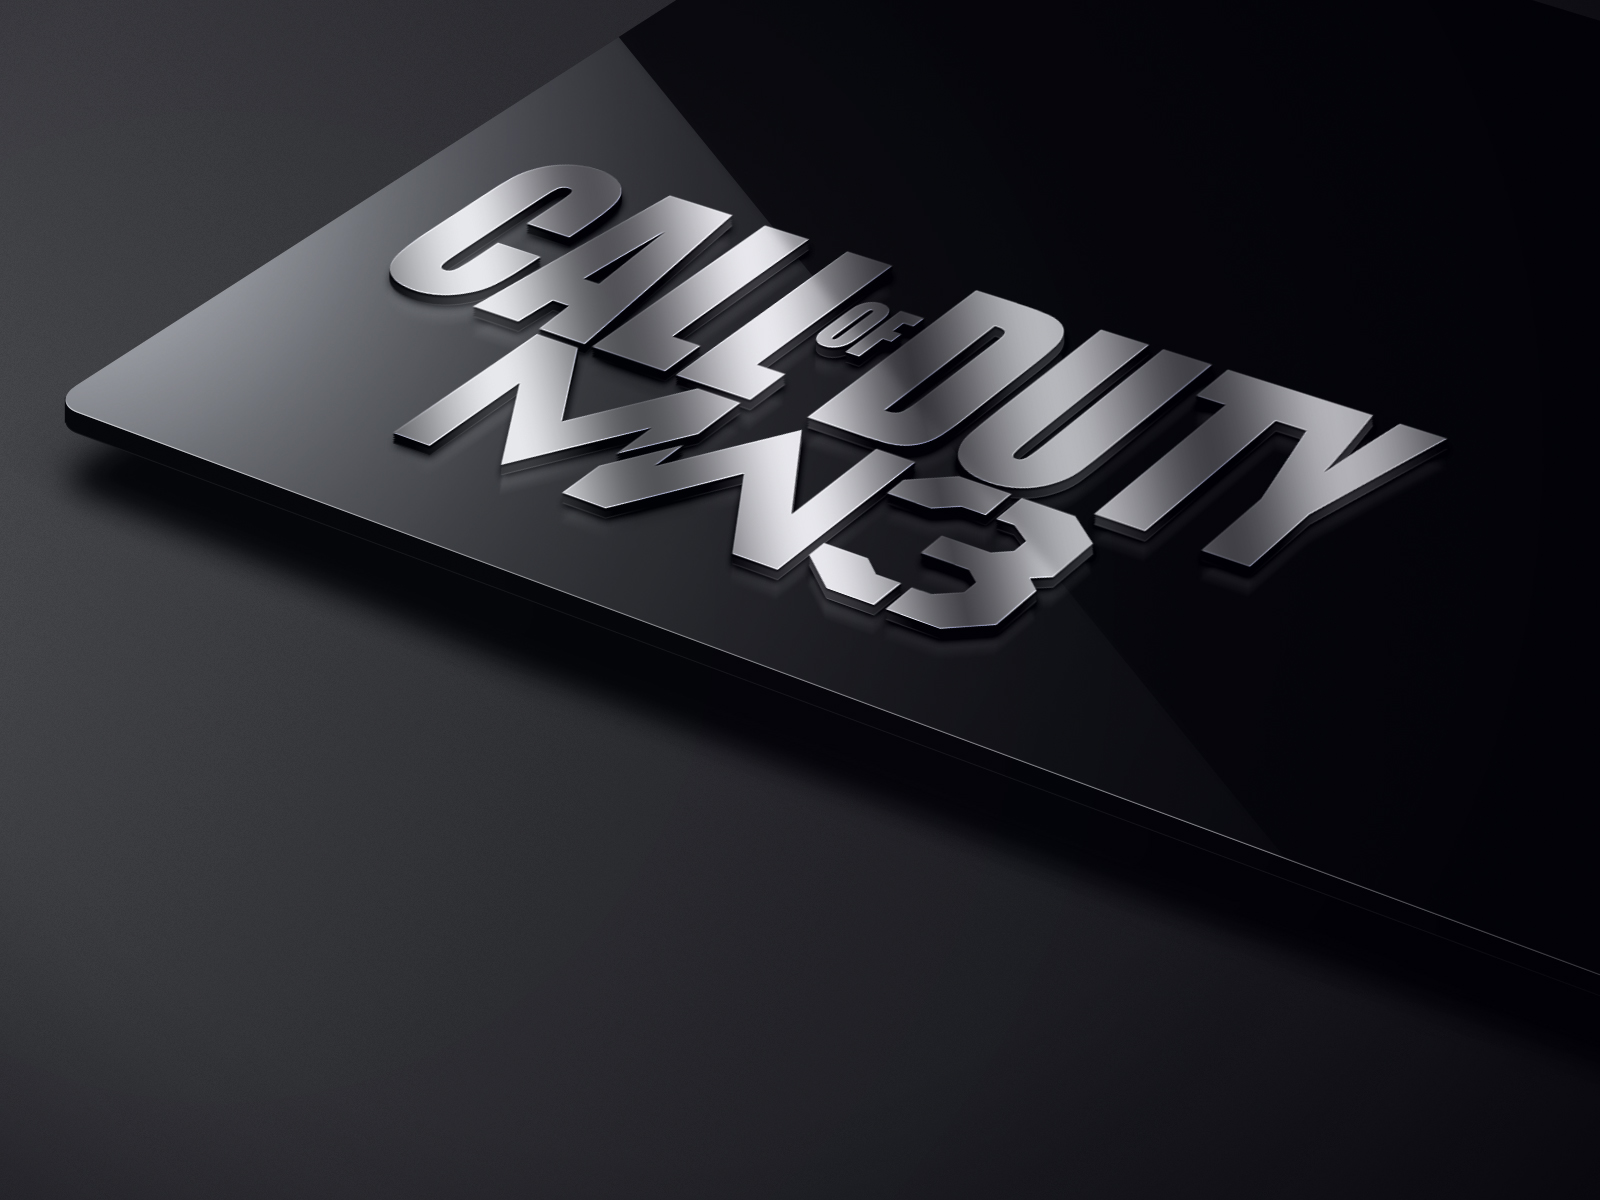 1600x1200 Call Of Duty Mw3 Desktop PC And Mac Wallpaper